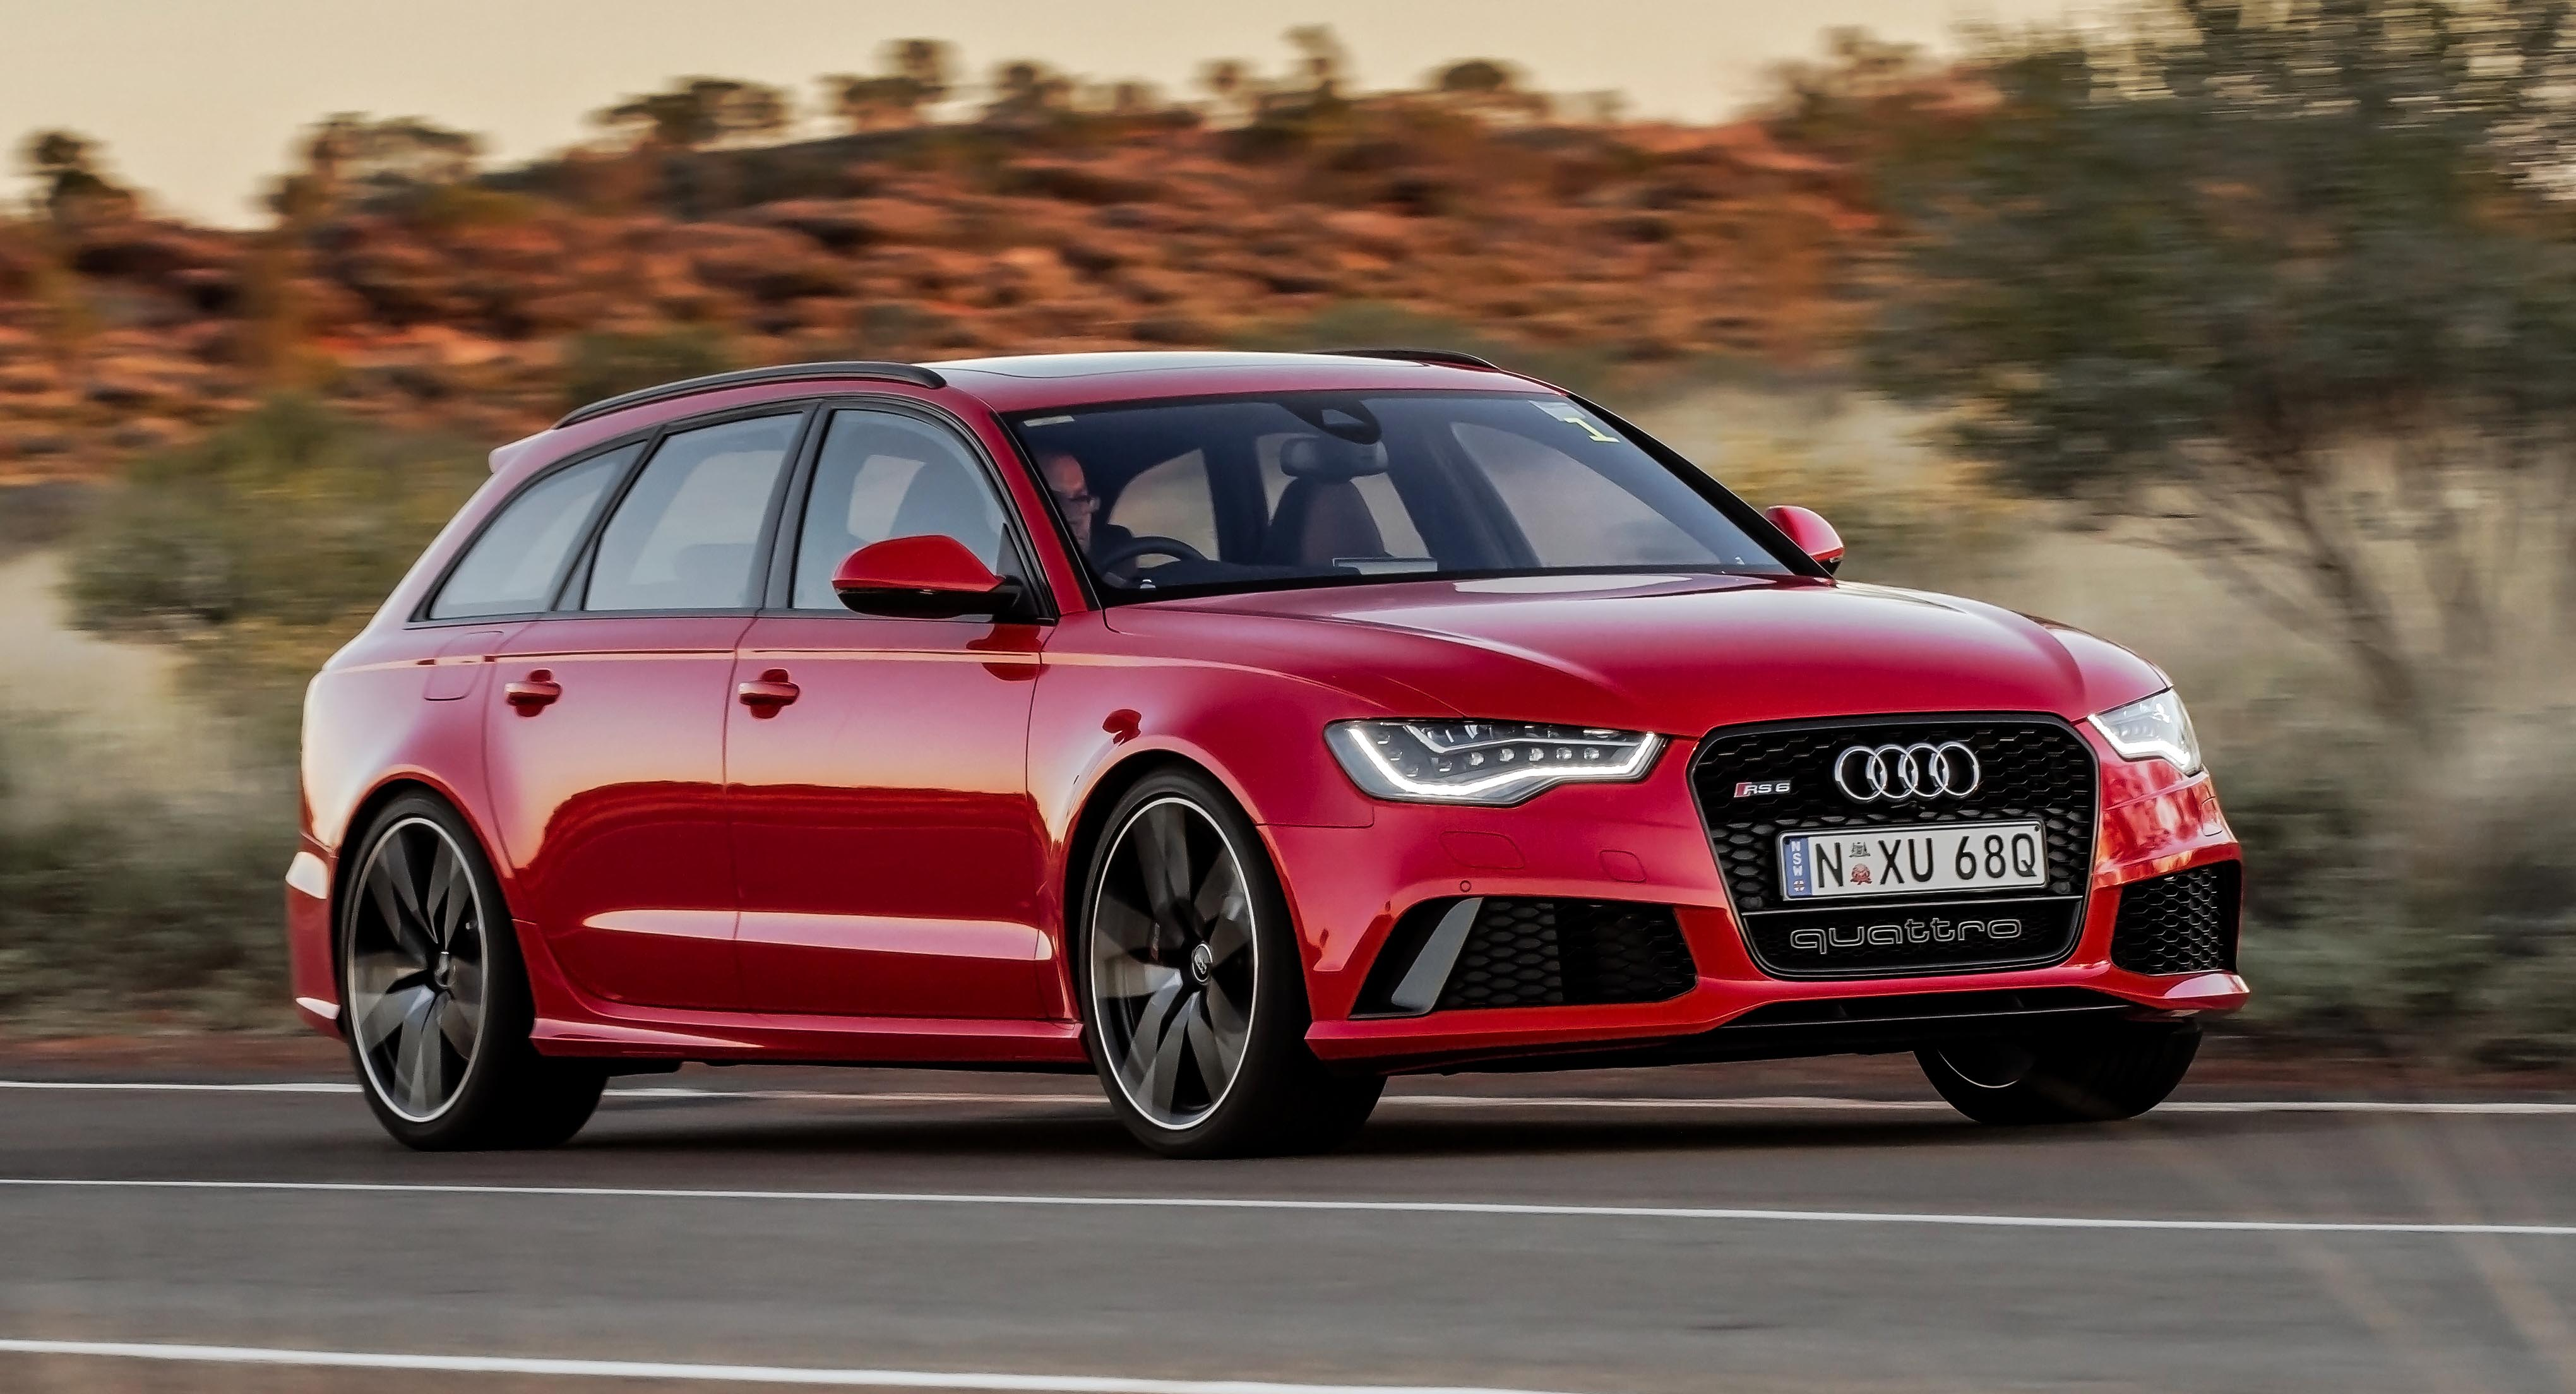 Audi RS6 4.0 TFSI - 2015 - Stage 2 by DimSport